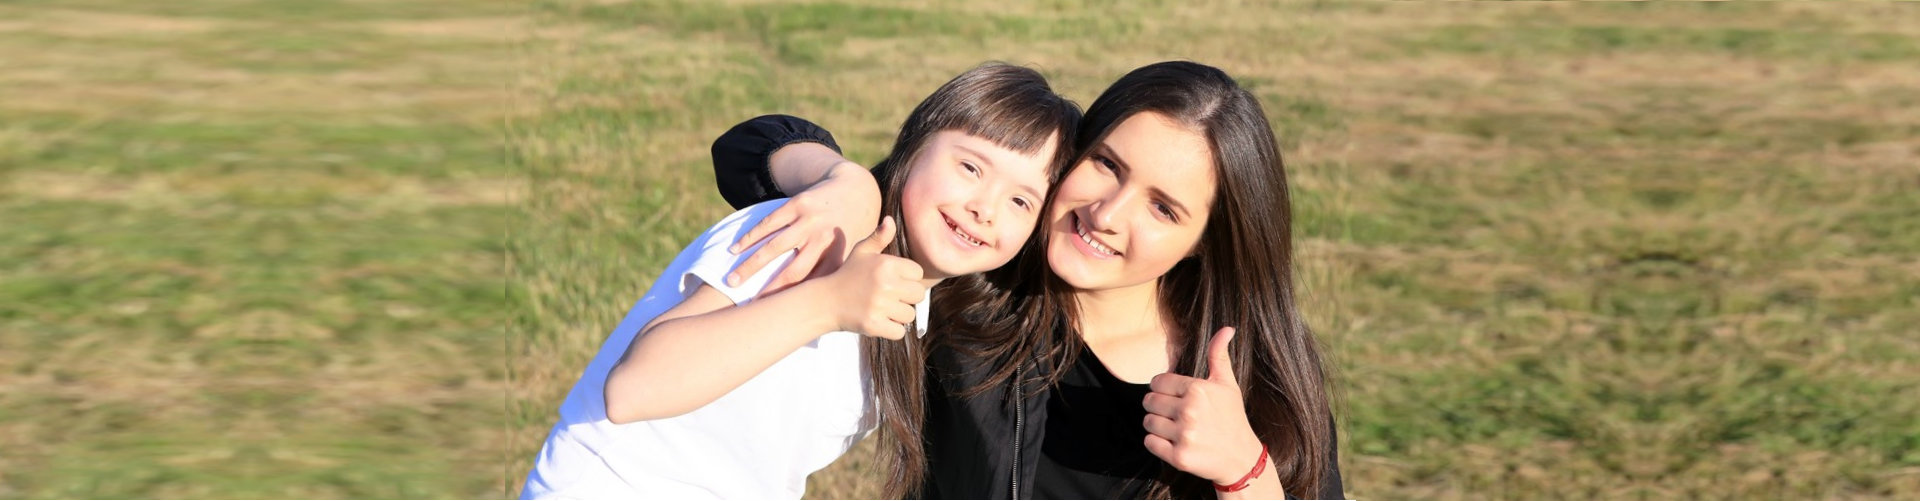 woman with a kid showing thumbs up